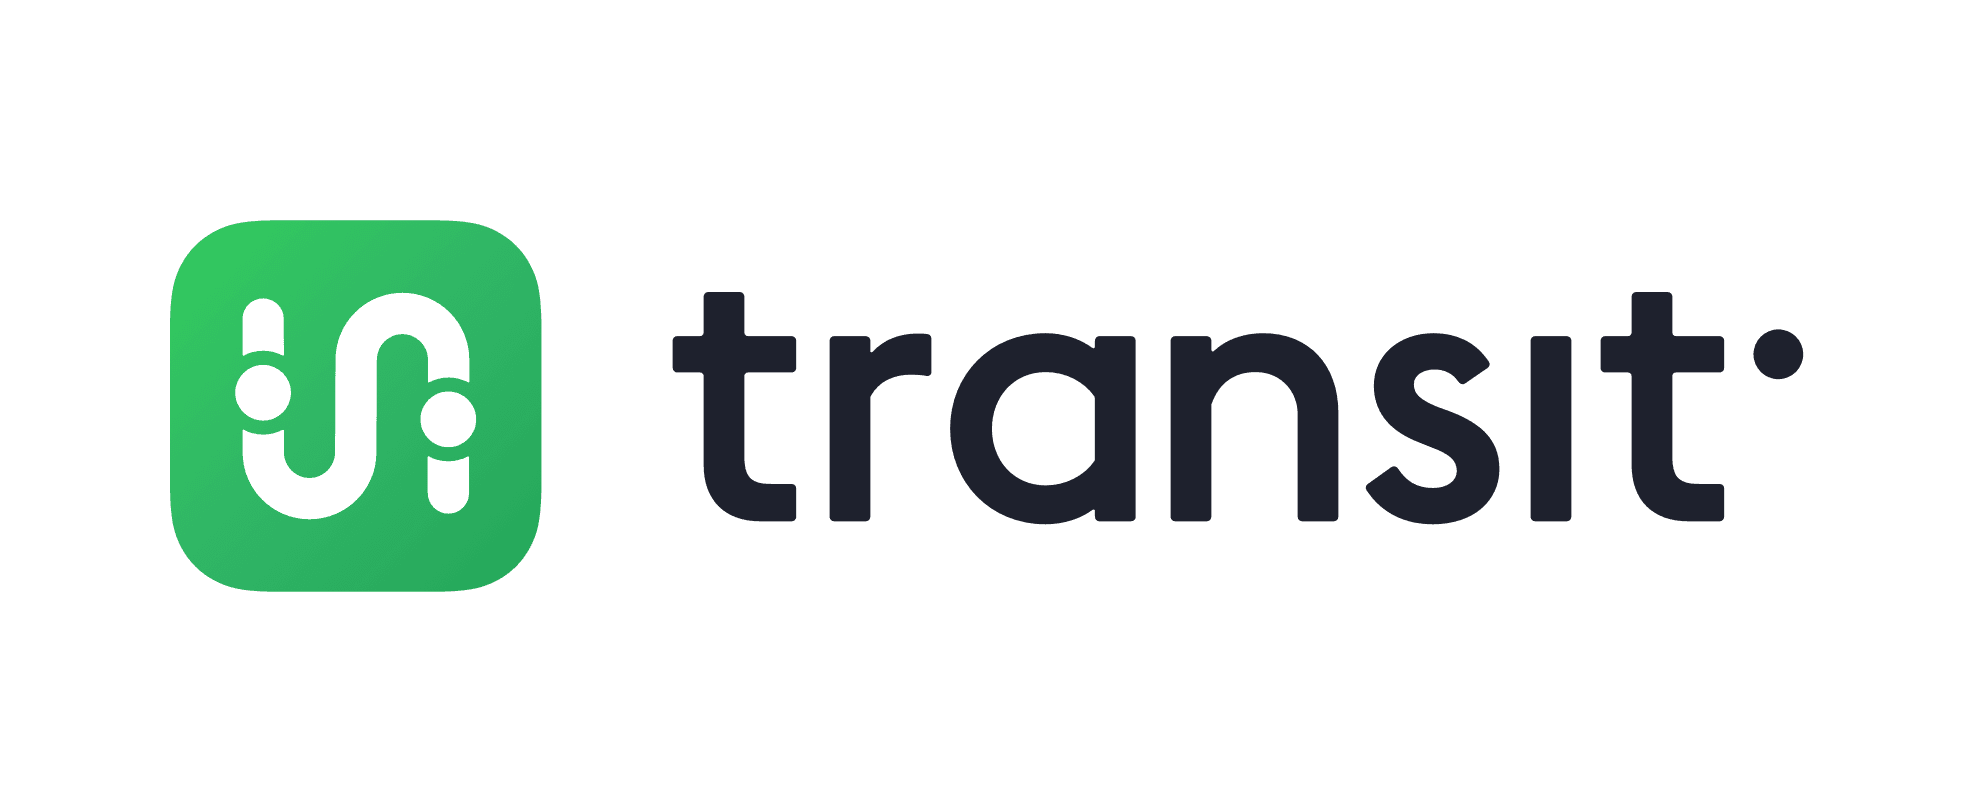 transit-logotype_iOS-dark